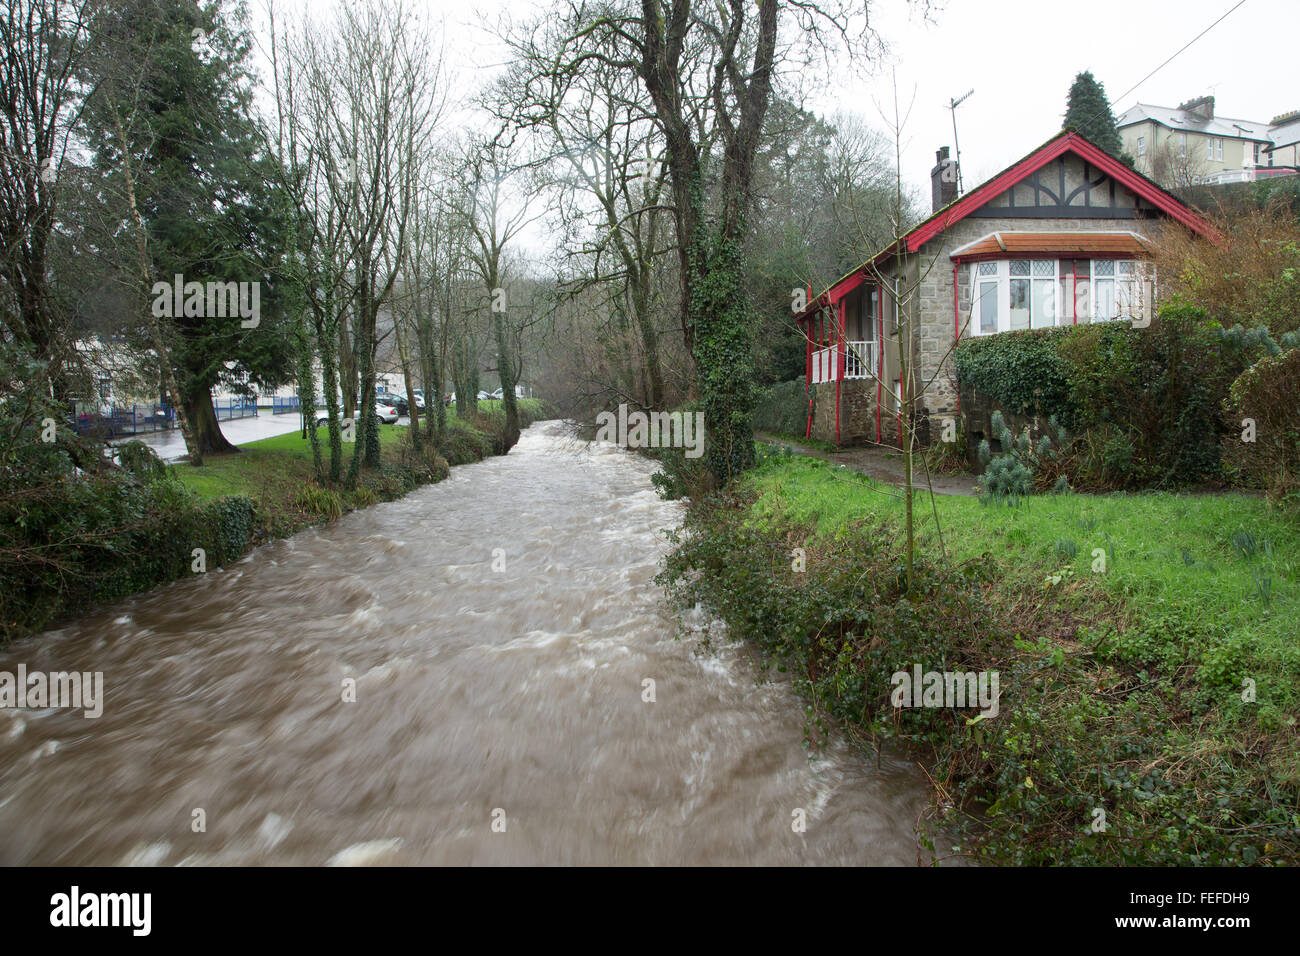 Okehampton, Devon, UK. 6th February, 2016. High river levels at Simmons Park in Okehampton during storm. Credit: Stock Photo